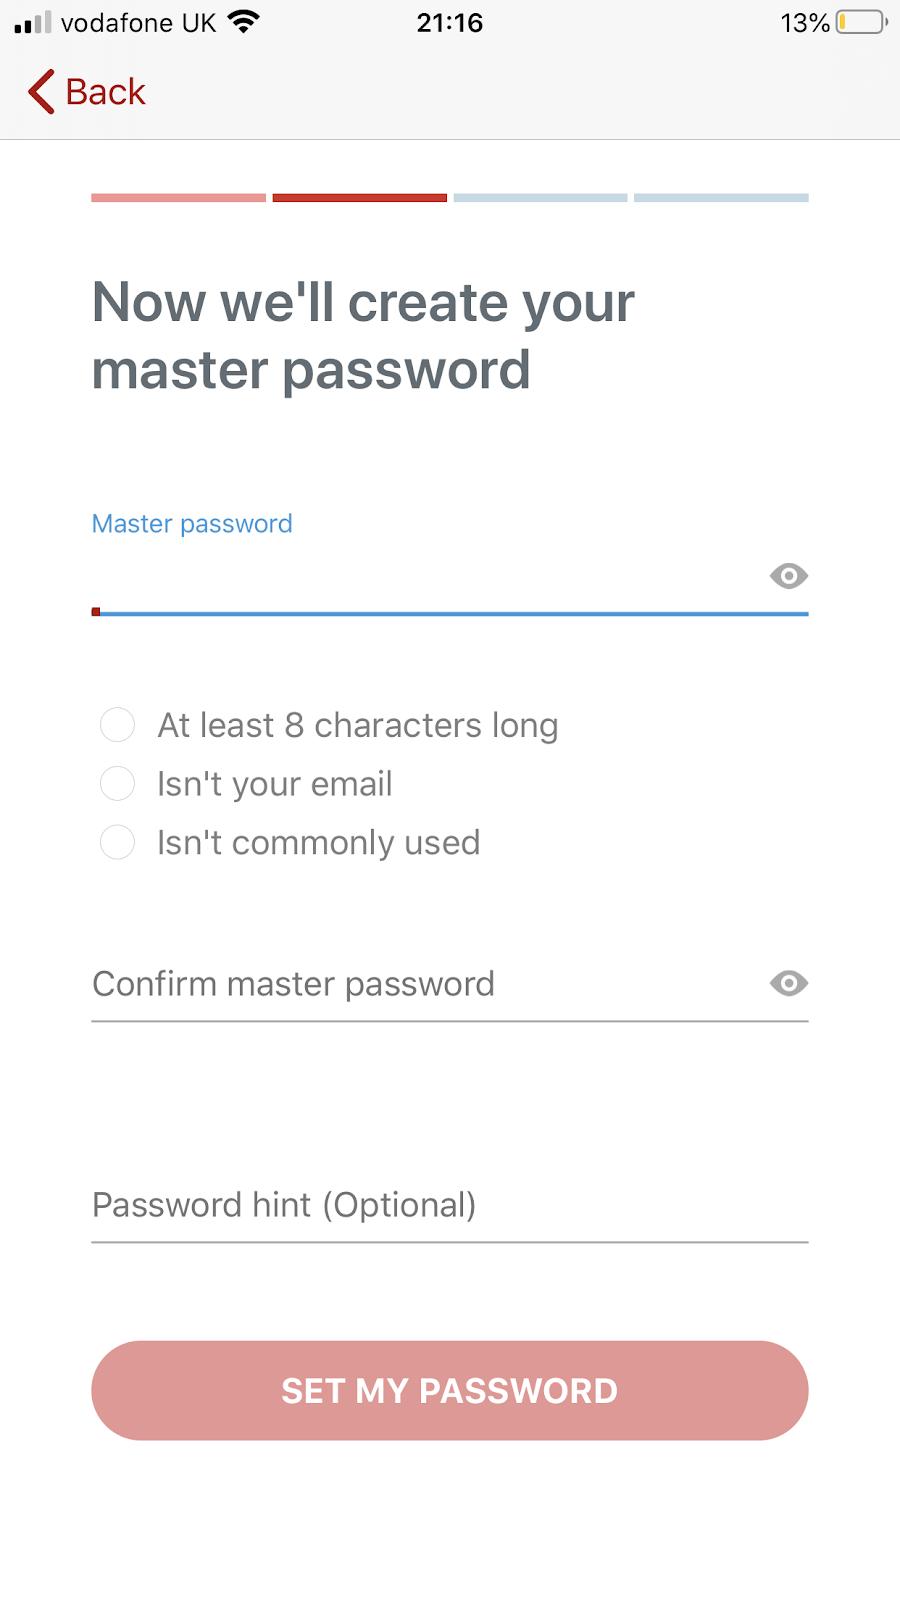 How to create a master password in LastPass password manager app in iPhone. Part of the article by Hana Clode Marketing 'LastPass Password Manager - Apps to Make Your Life Easier'.